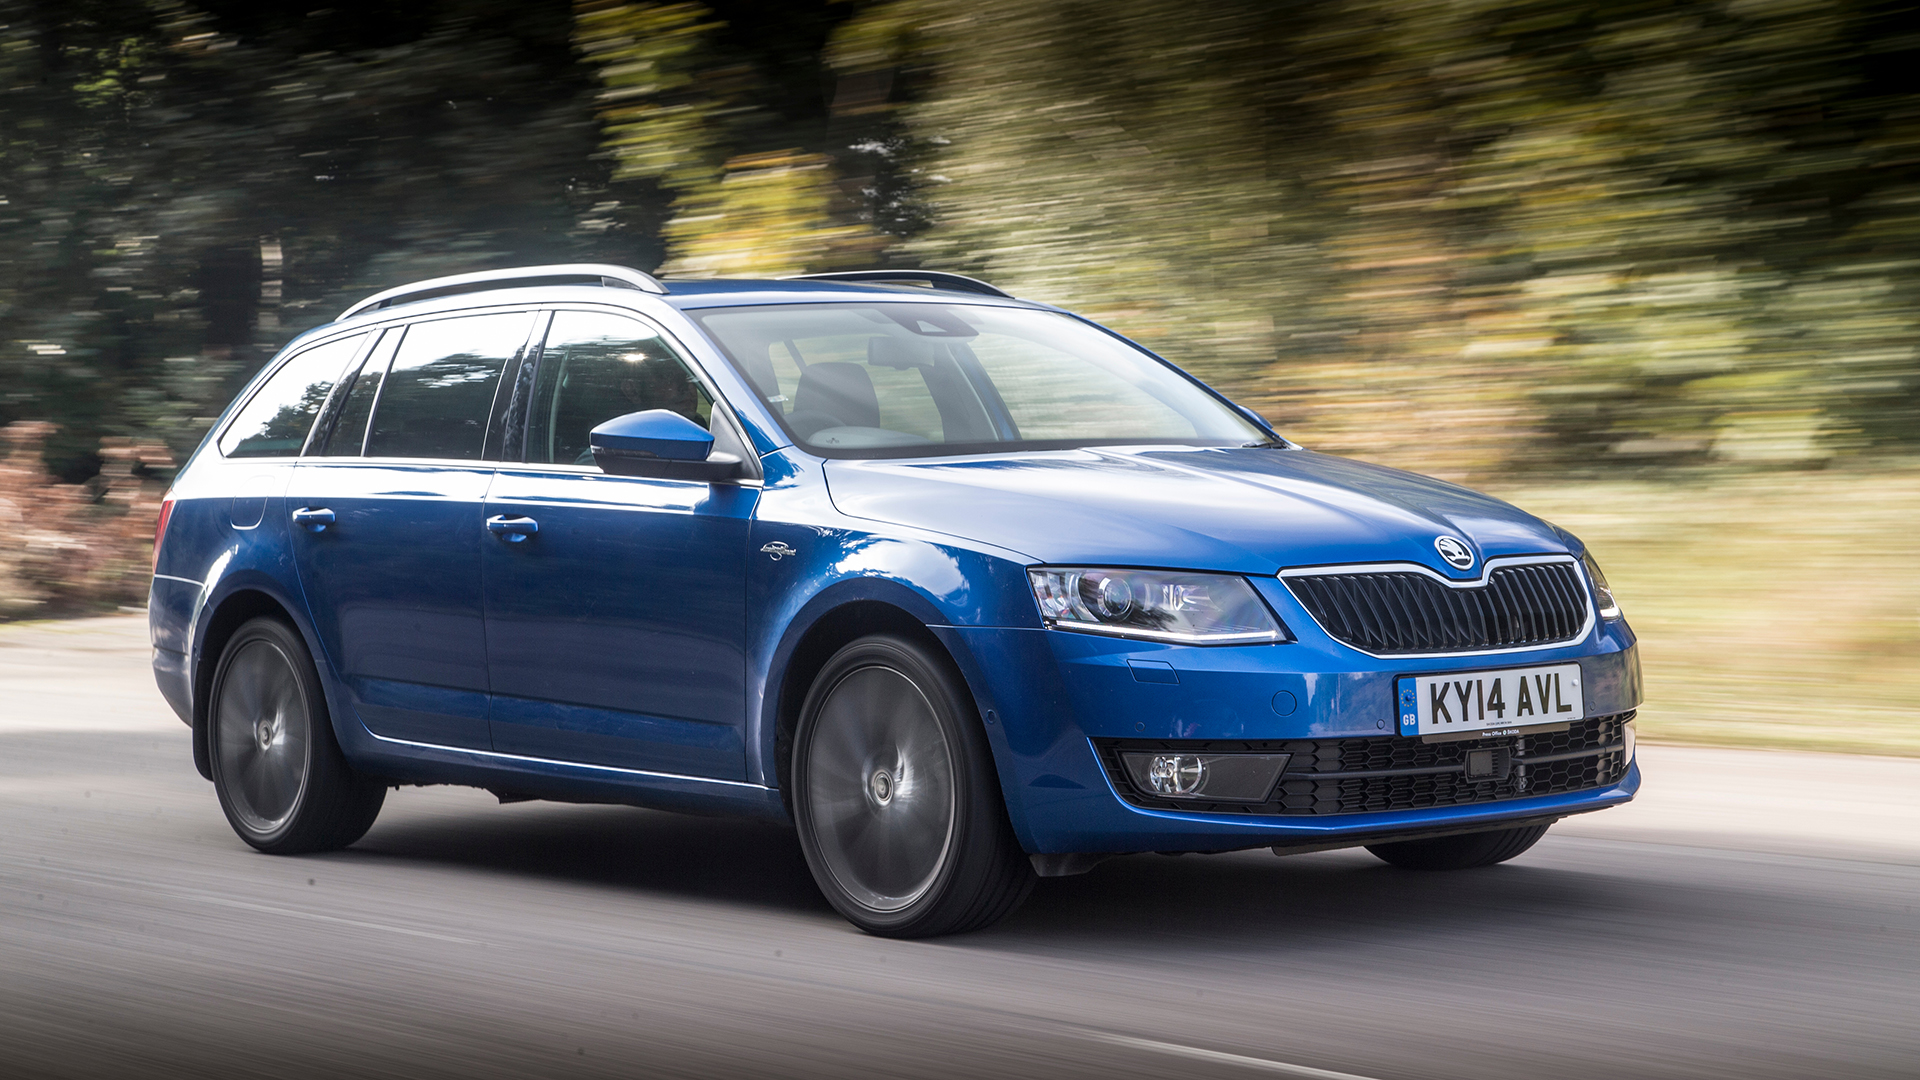 Used SKODA Octavia Cars for Sale on Auto Trader UK